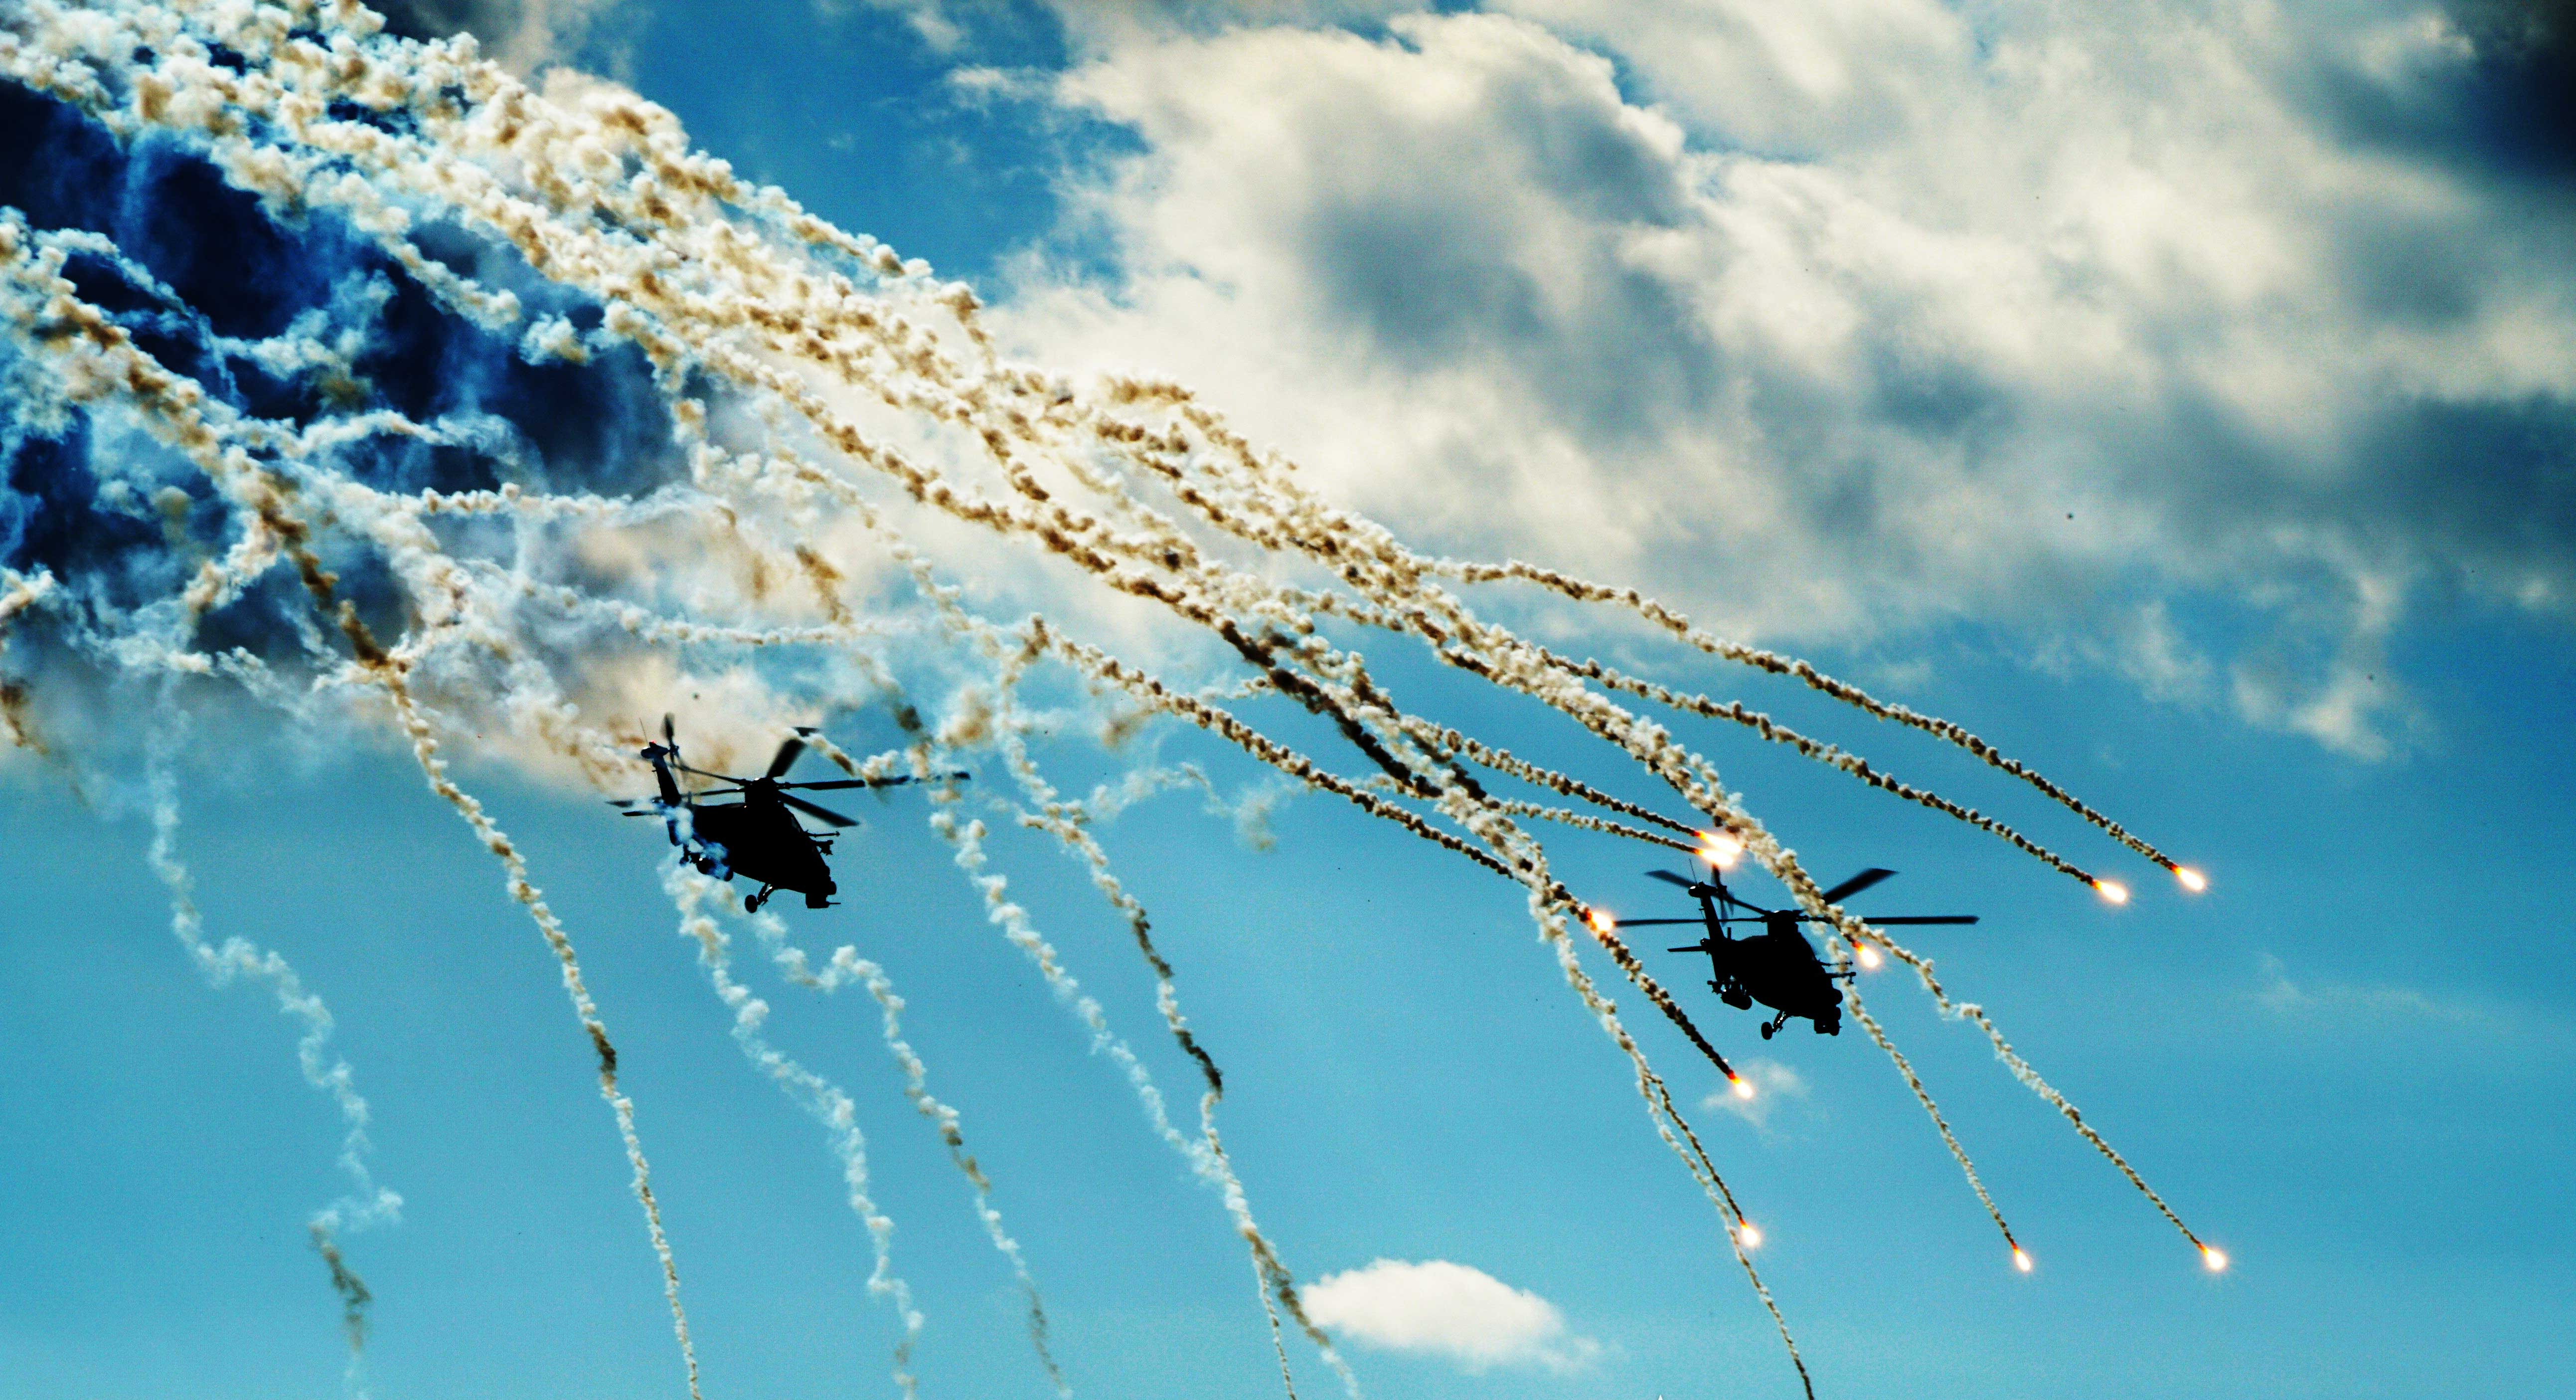 Helicopters expend countermeasure flares